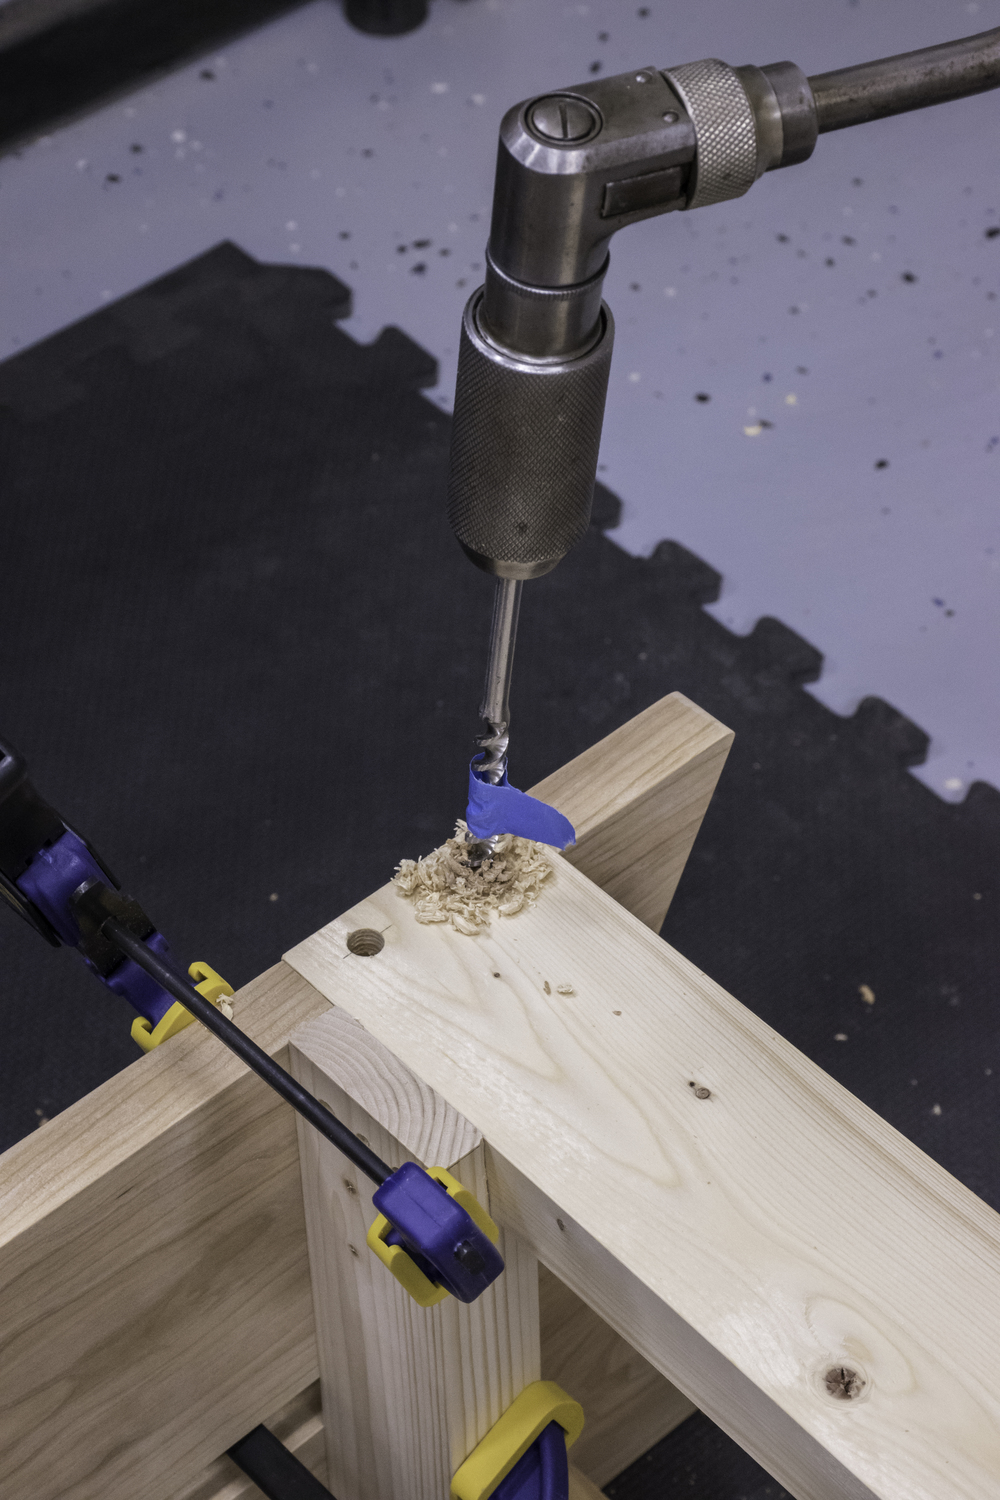 Boring the holes for the dowels.